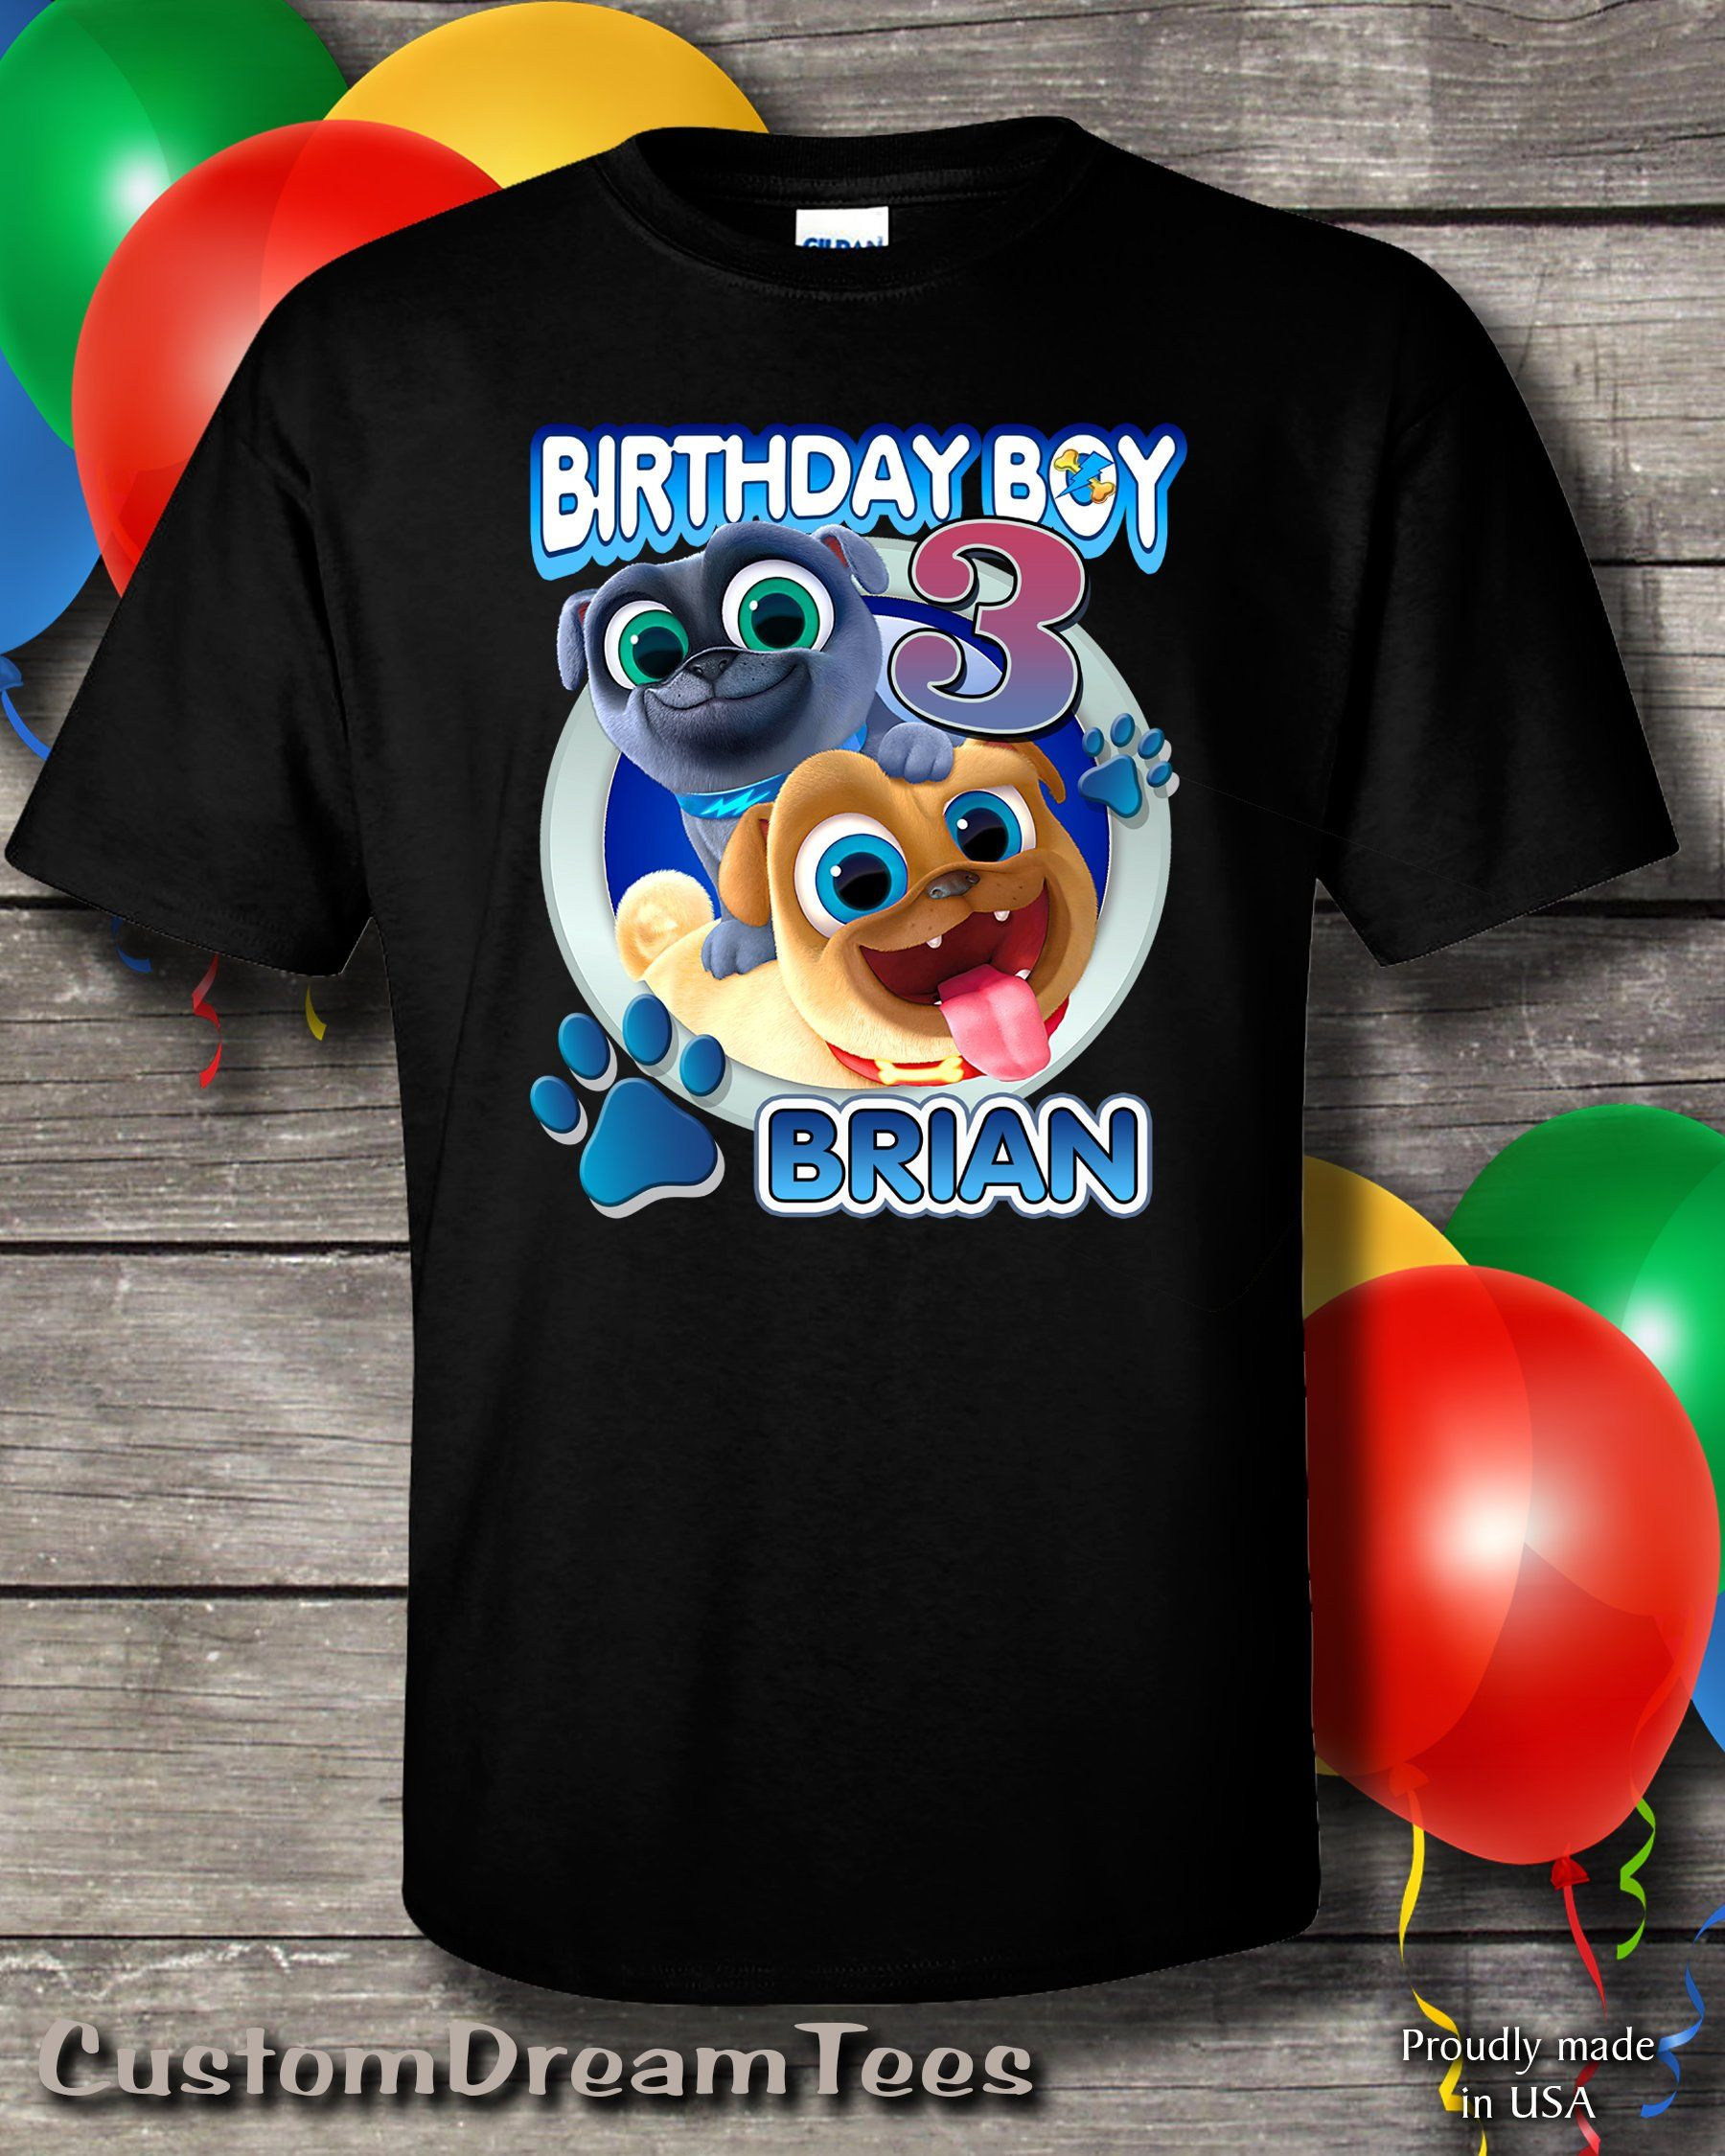 b168e57bf Puppy Dog Pals Birthday Shirt Puppy Dog Pals Birthday Shirt | Etsy